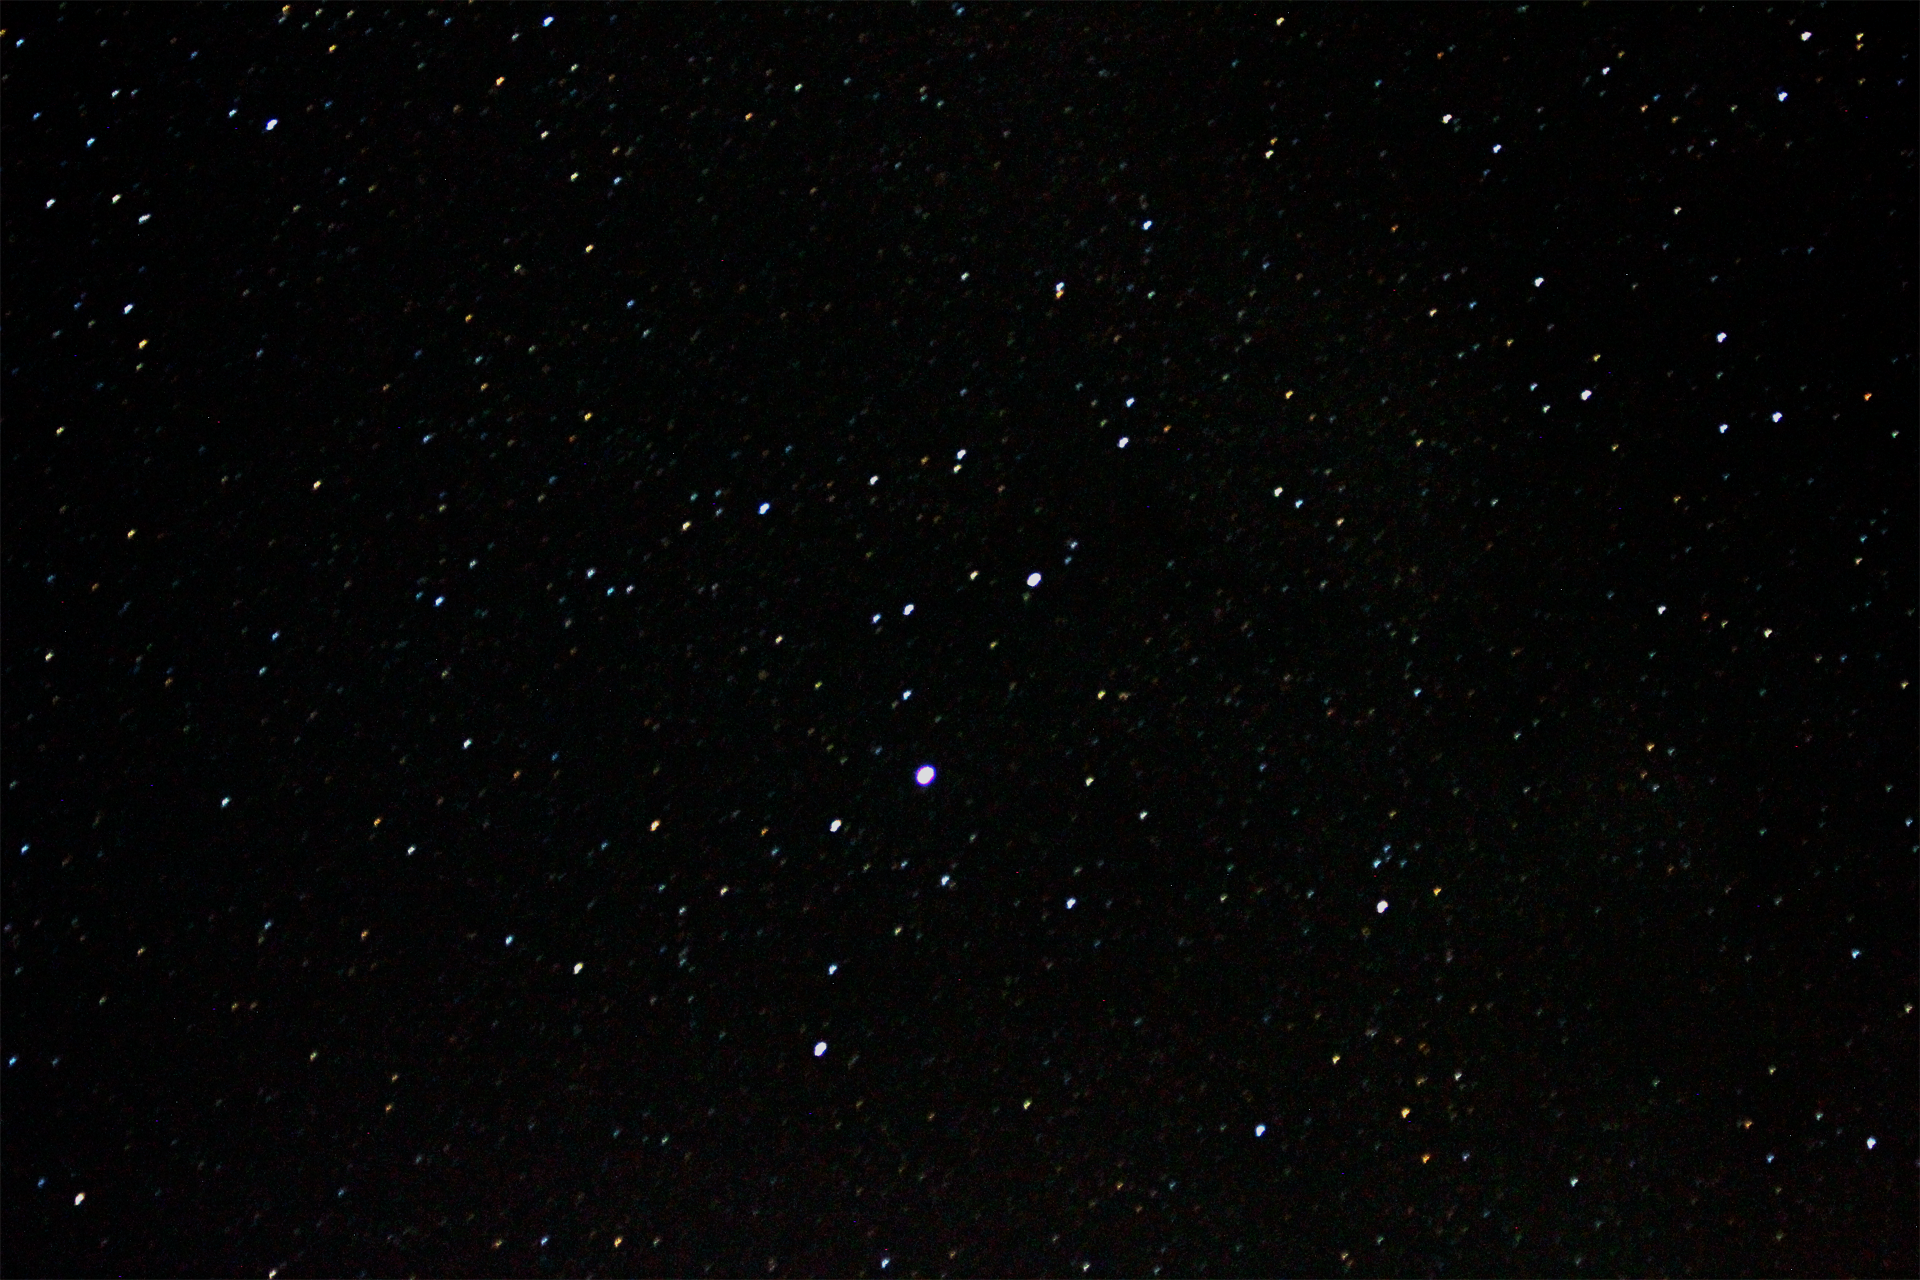 Took an image of the night sky yesterday